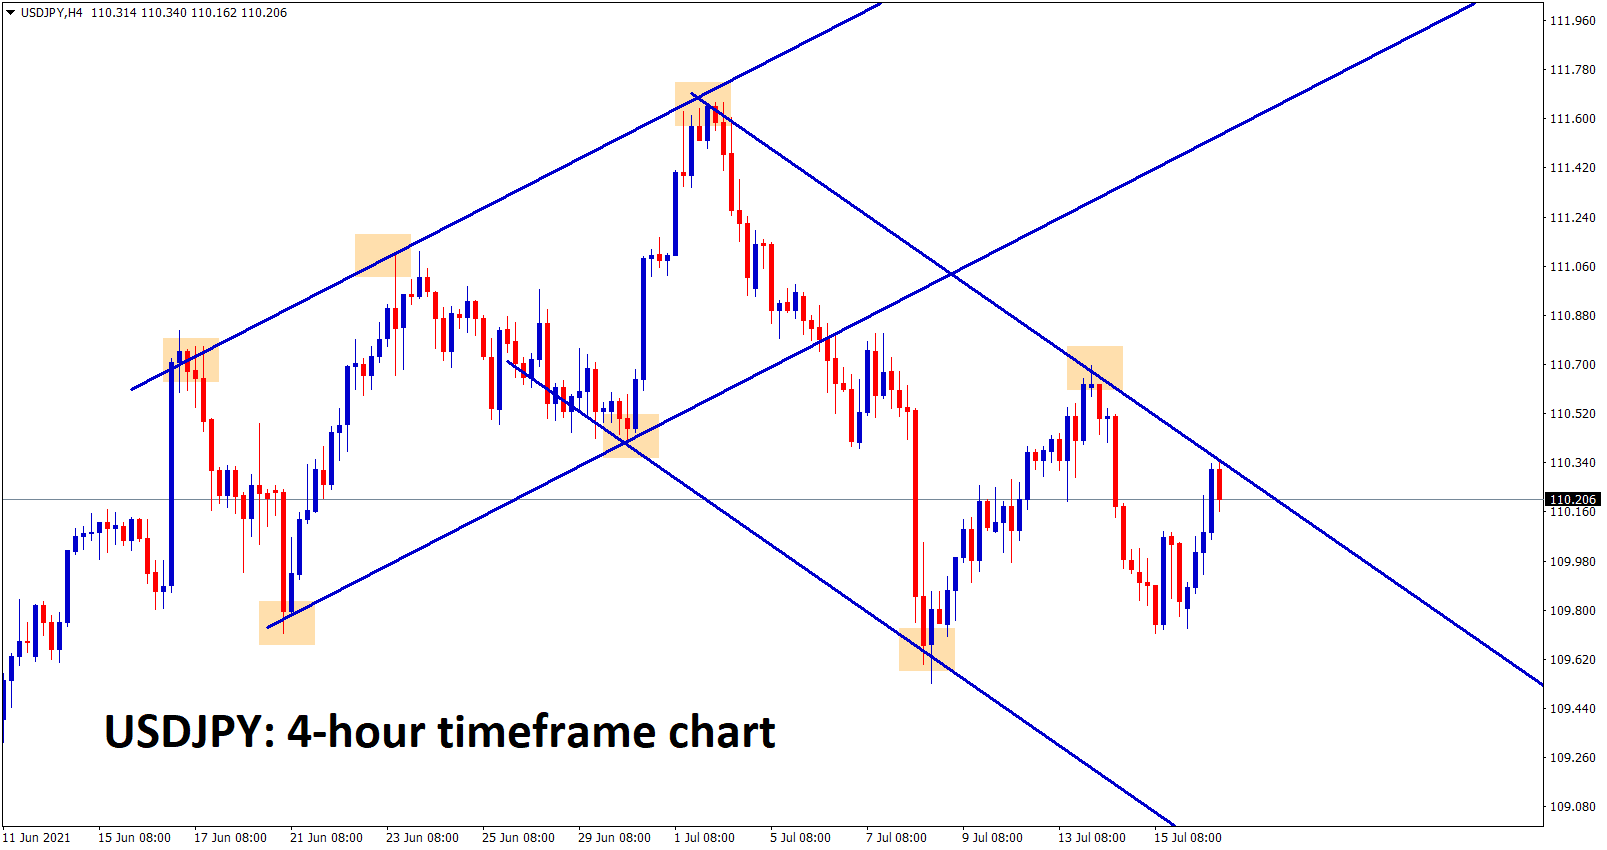 USDJPY is moving between the minor channel ranges now